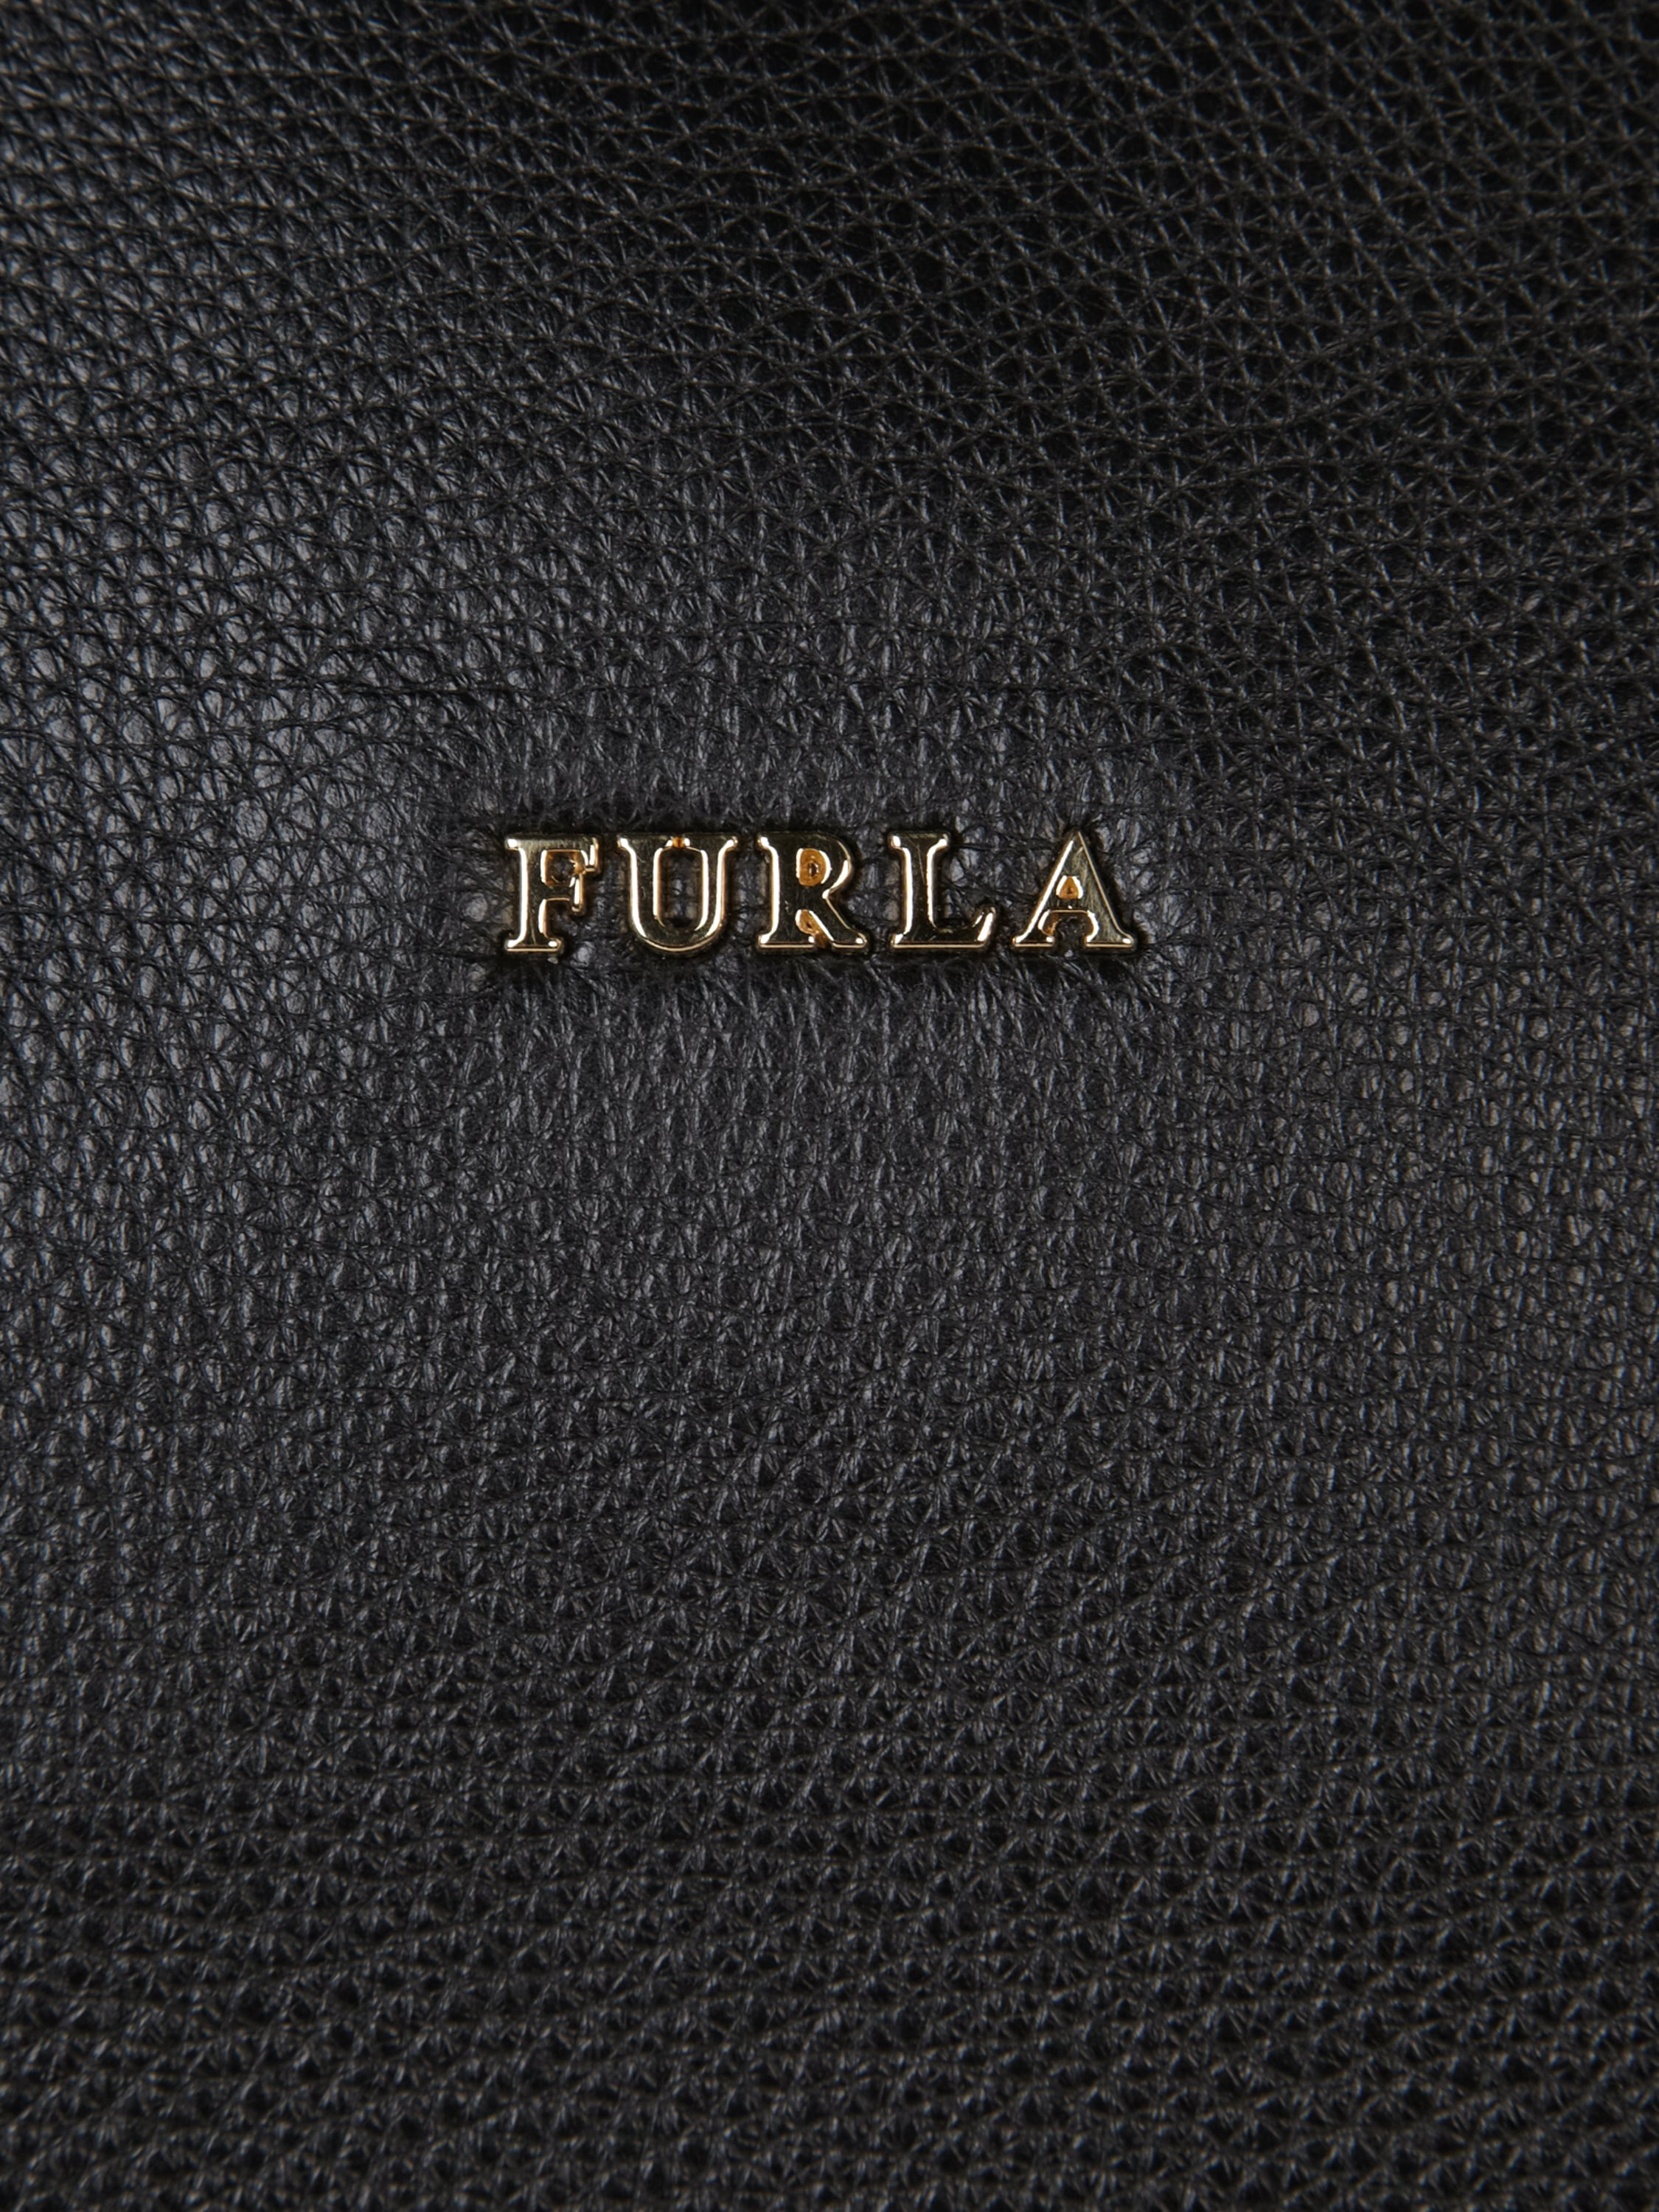 furla handtasche in trapez form in grau schwarz online. Black Bedroom Furniture Sets. Home Design Ideas